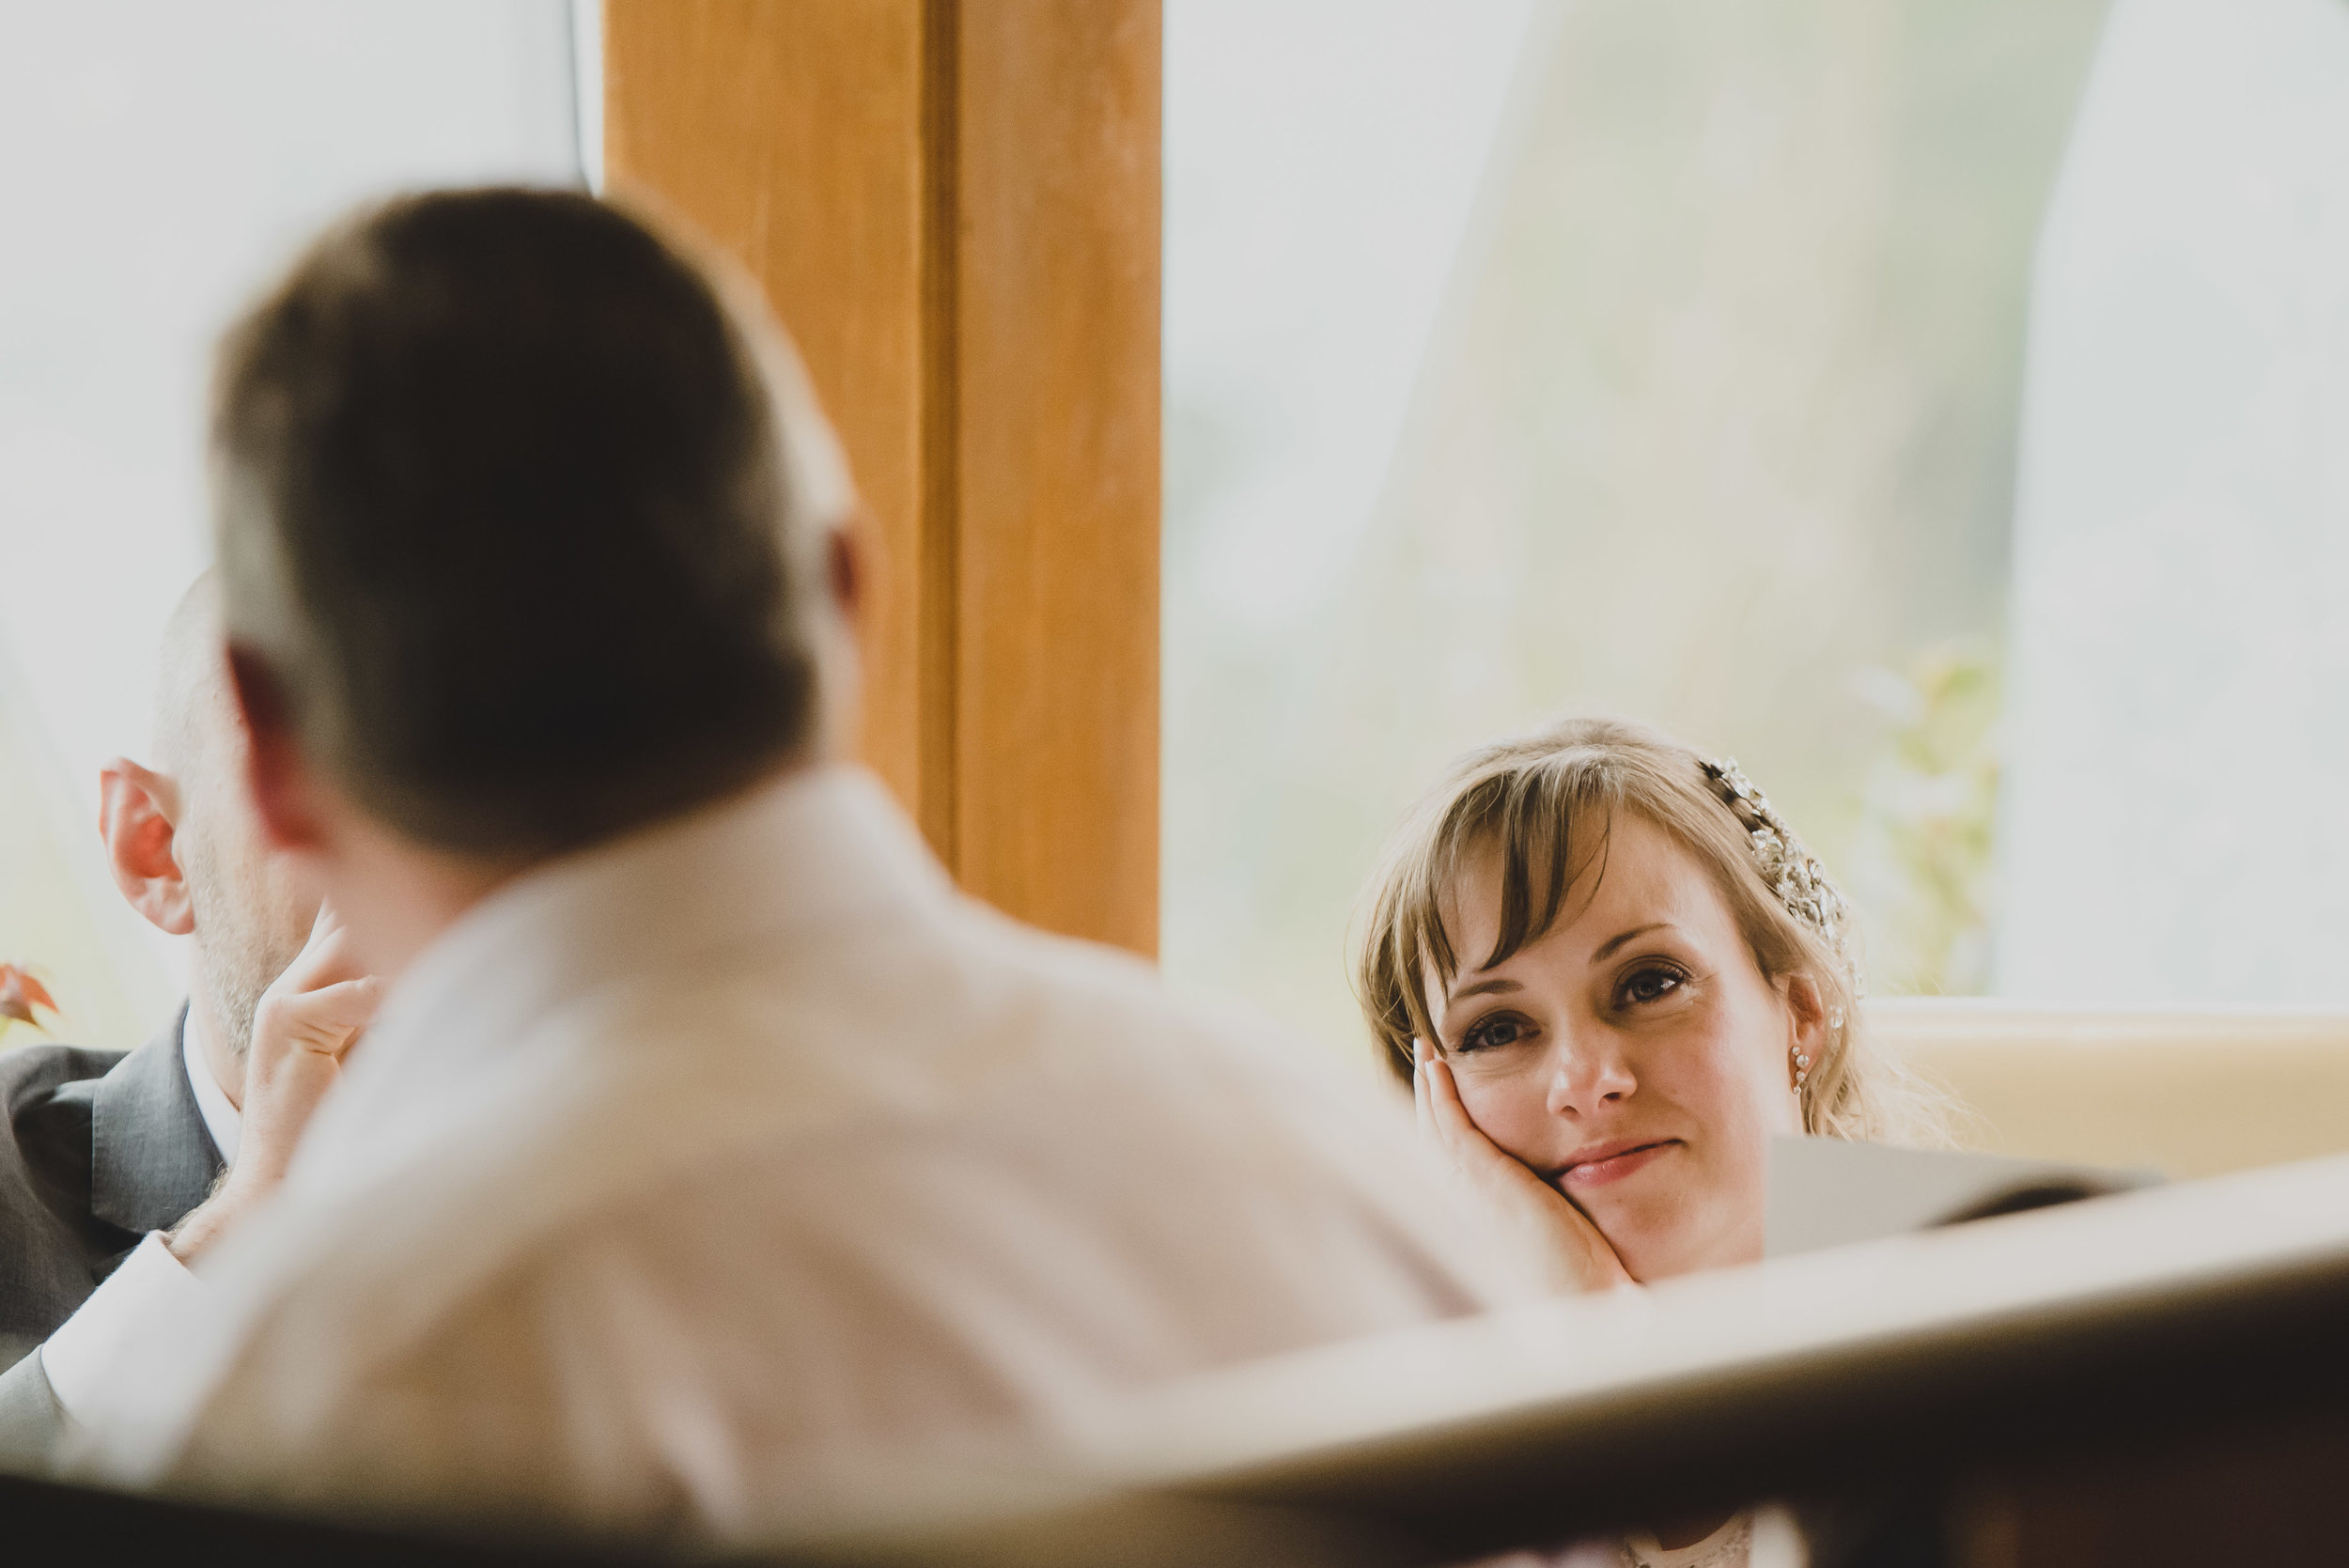 I love the way the Bride is staring at her Dad in this image.